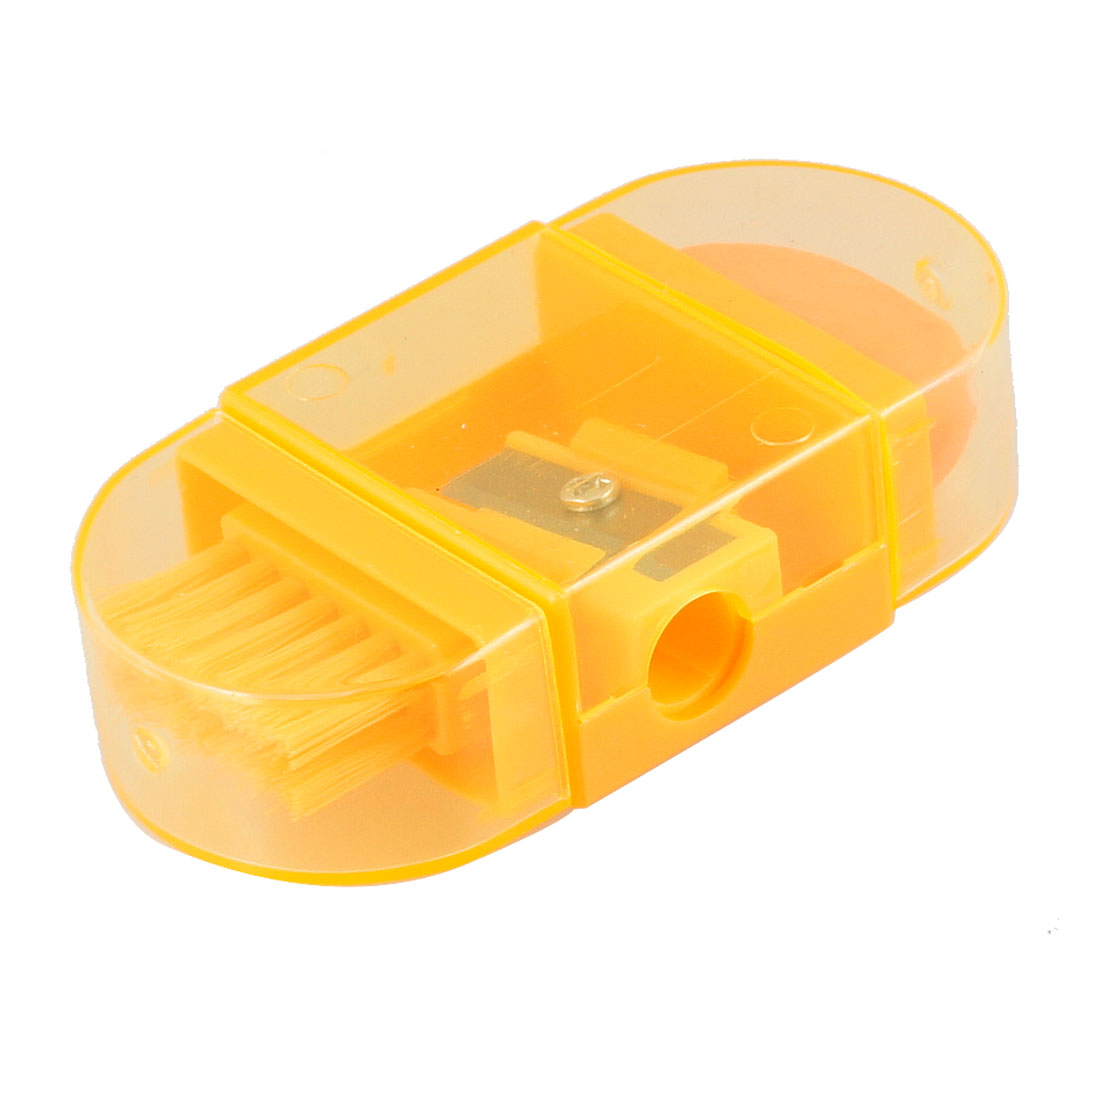 Orange Clear Plastic Case Multifunctional Pencil Sharpener for School